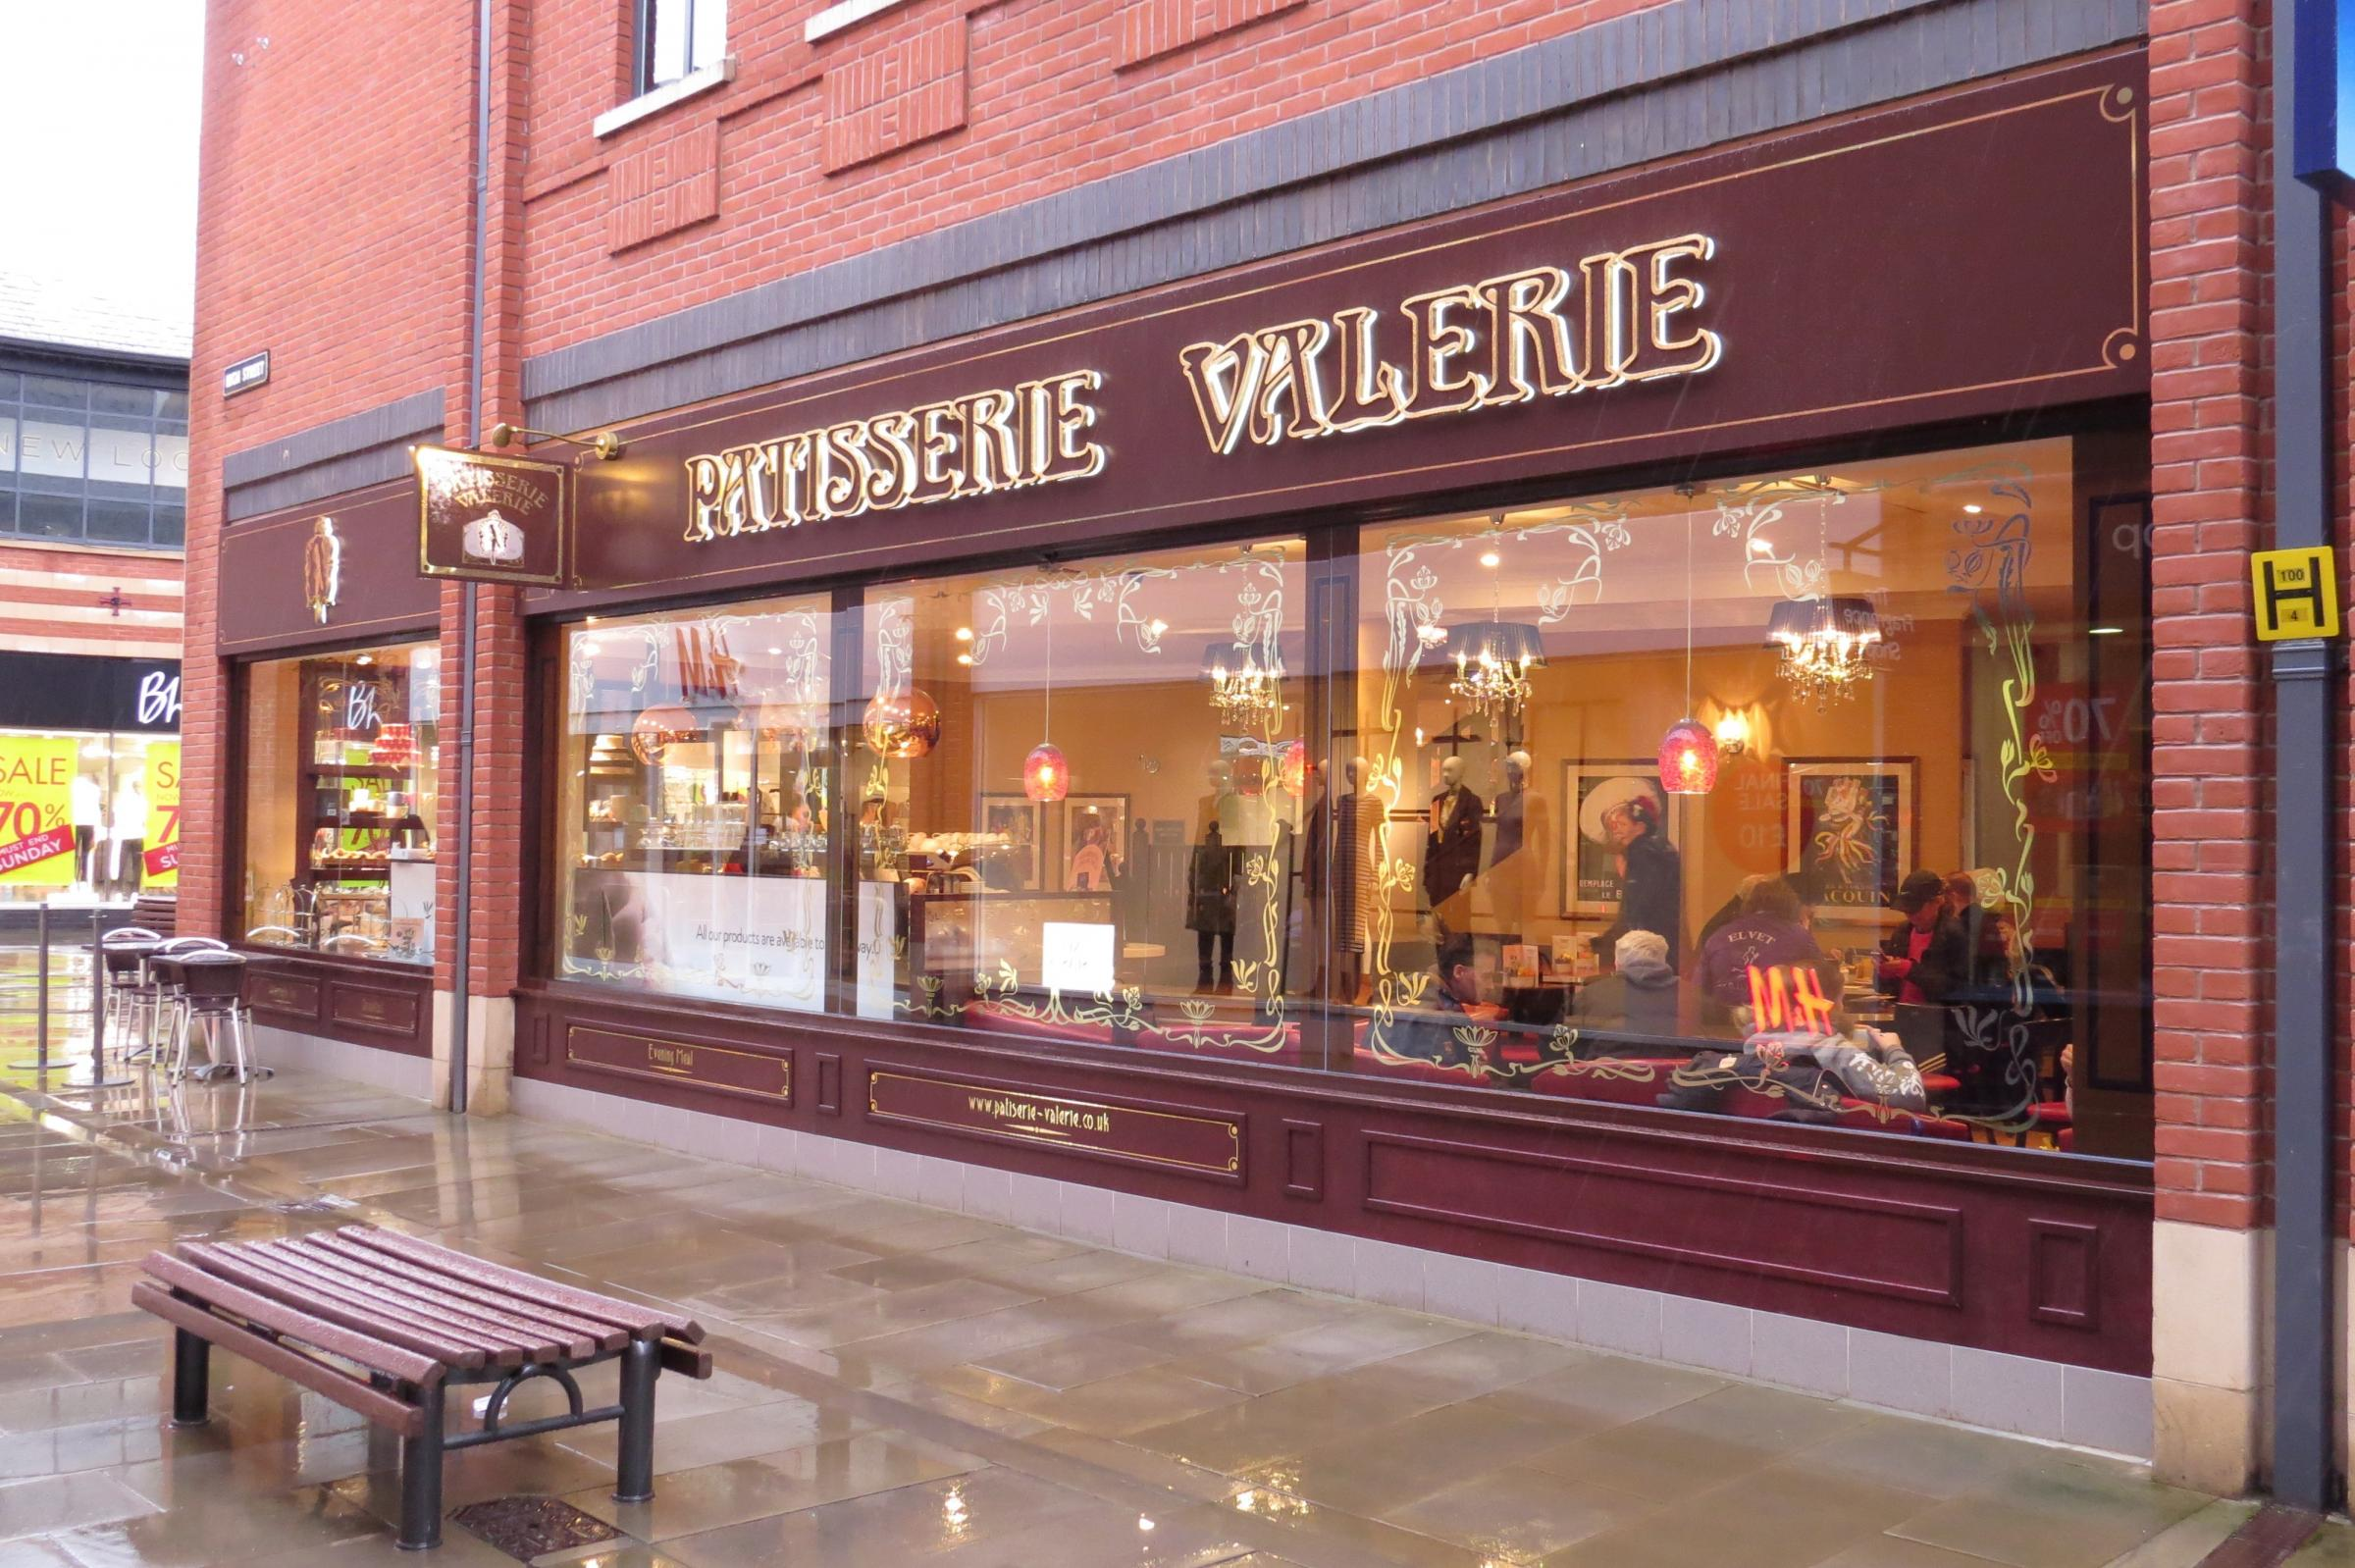 Patisserie Valerie, in the Prince Bishops shopping centre, Durham. Picture: MARK TALLENTIRE.